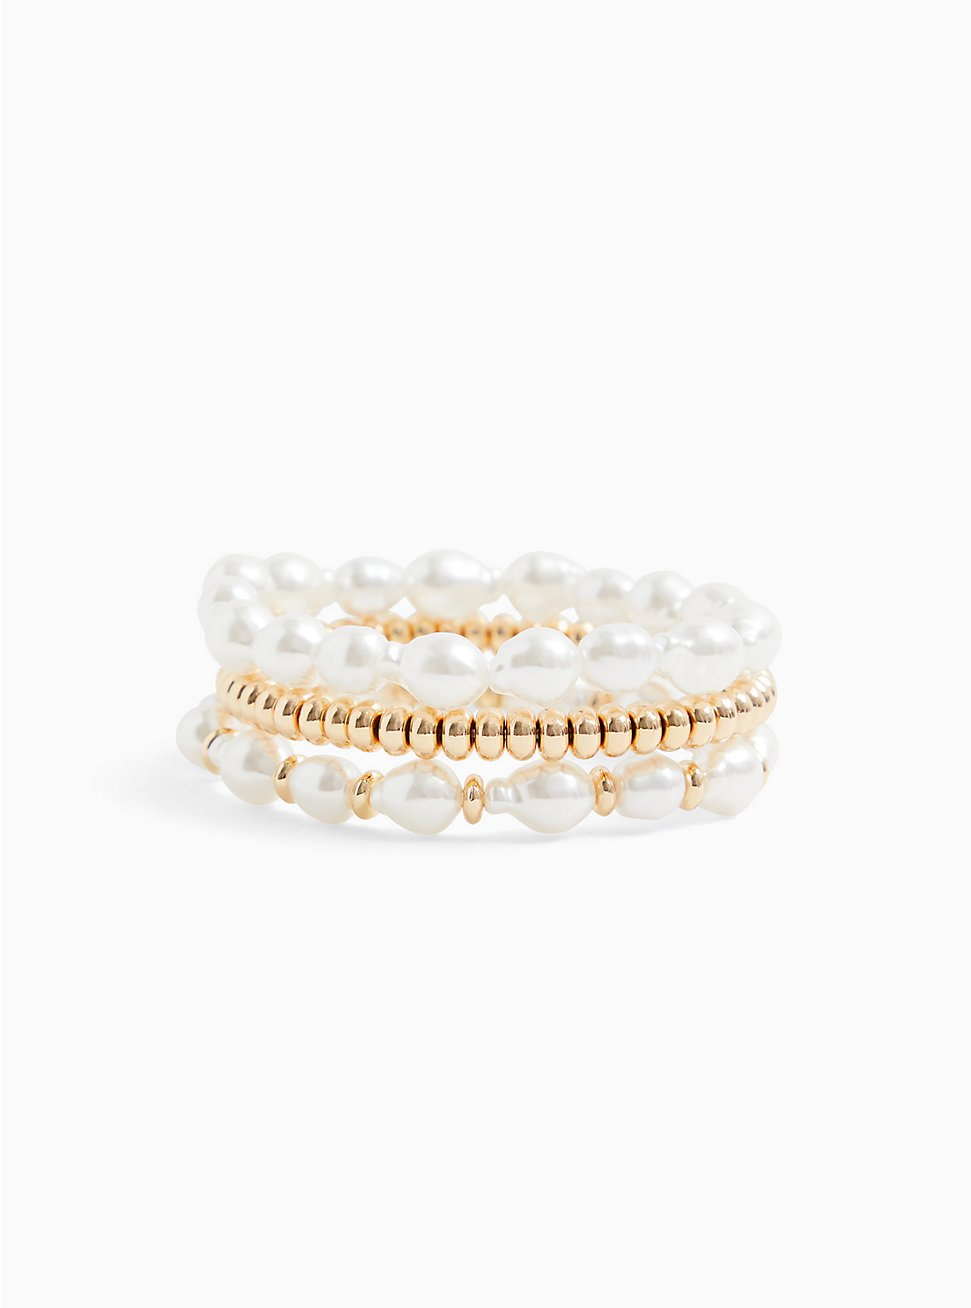 Plus Size Gold-Tone & Faux Pearl Stretch Bracelet Set - Set of 3, BLUSH, hi-res